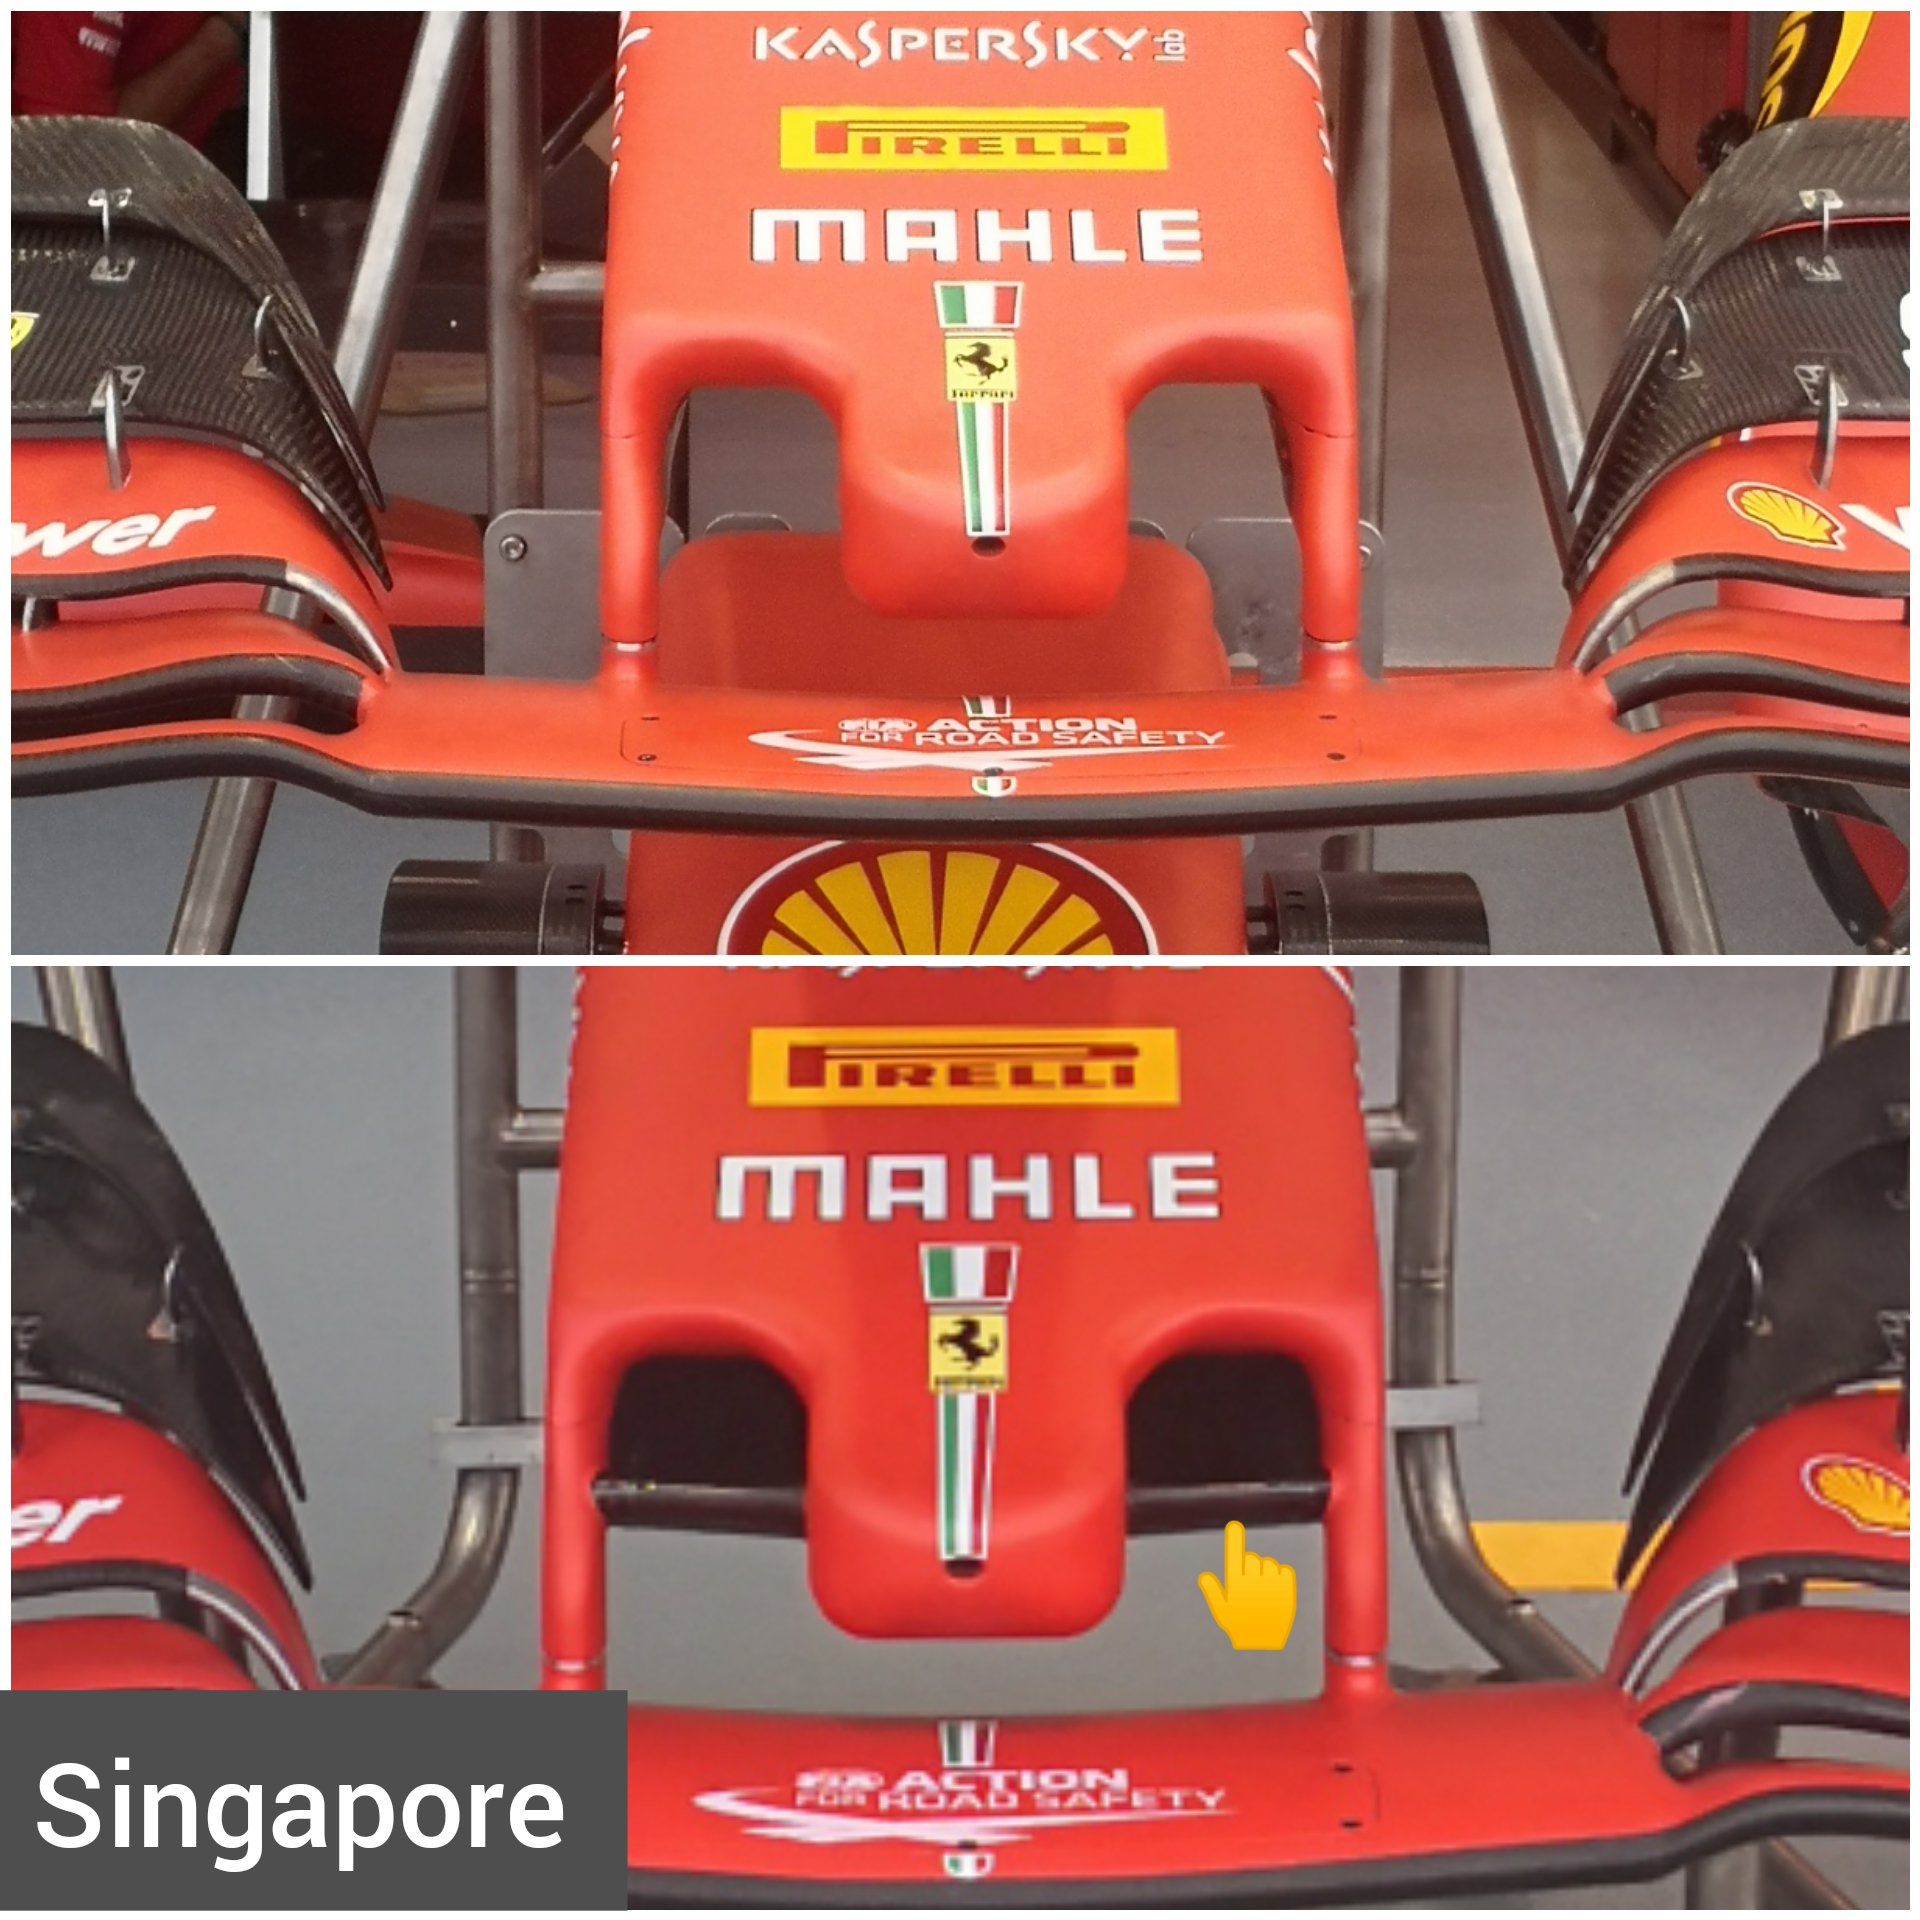 In Pictures The New Ferrari Nose With Cape As Part Of The New Aero Package For Singapore